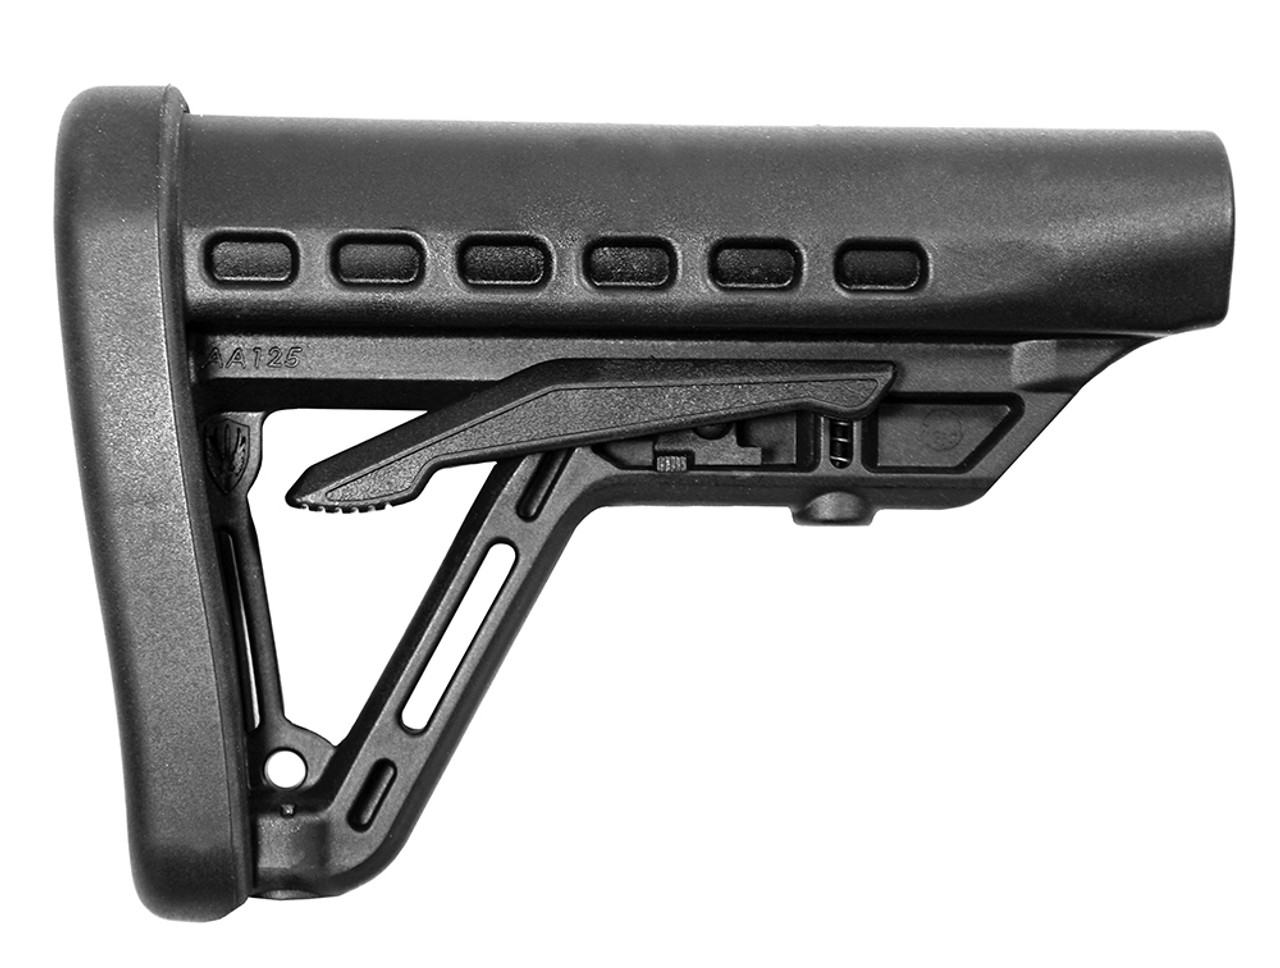 Archangel® Low-Profile AR-15® Buttstock with Commercial Tube - Black Polymer